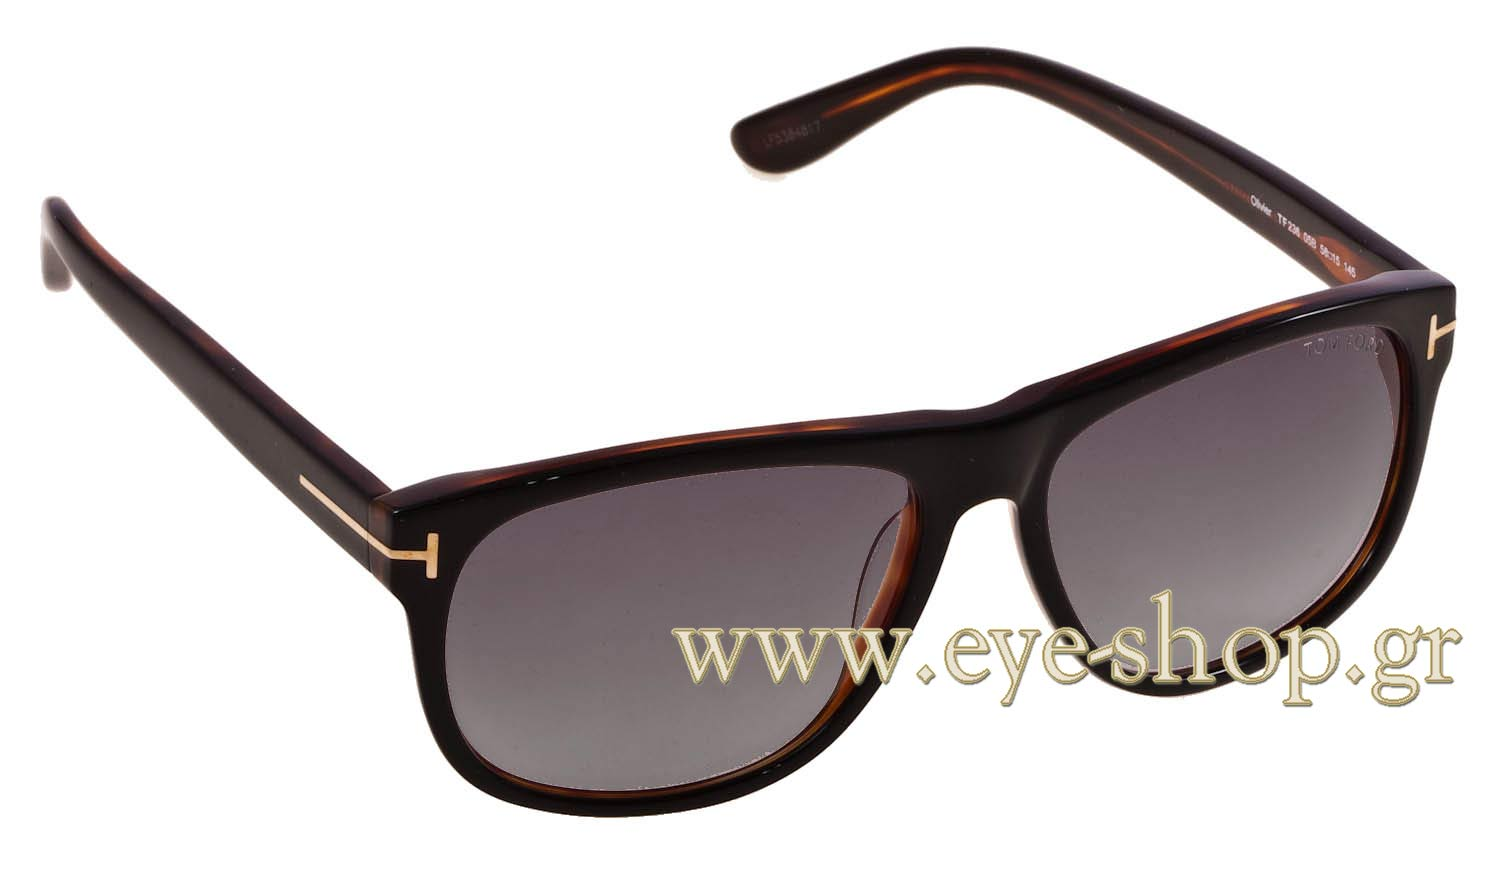 0f60920a95104 SUNGLASSES Tom Ford Olivier TF 236 05B